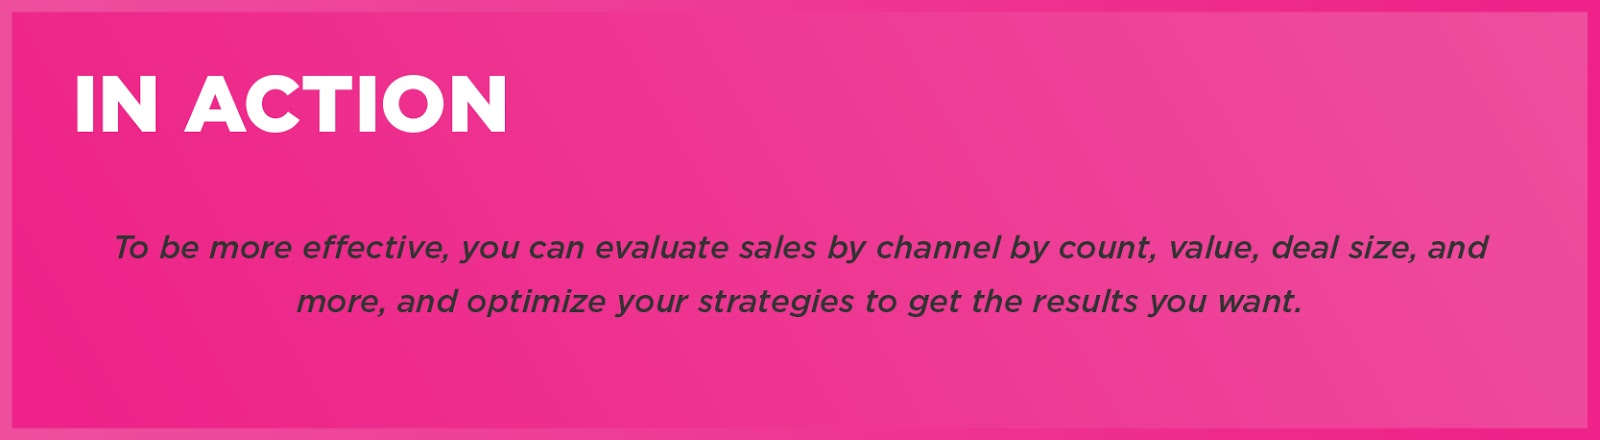 In Action: To be more effective, you can evaluate sales by channel by count, value, deal size, and more, and optimize your strategies to get the results you want.